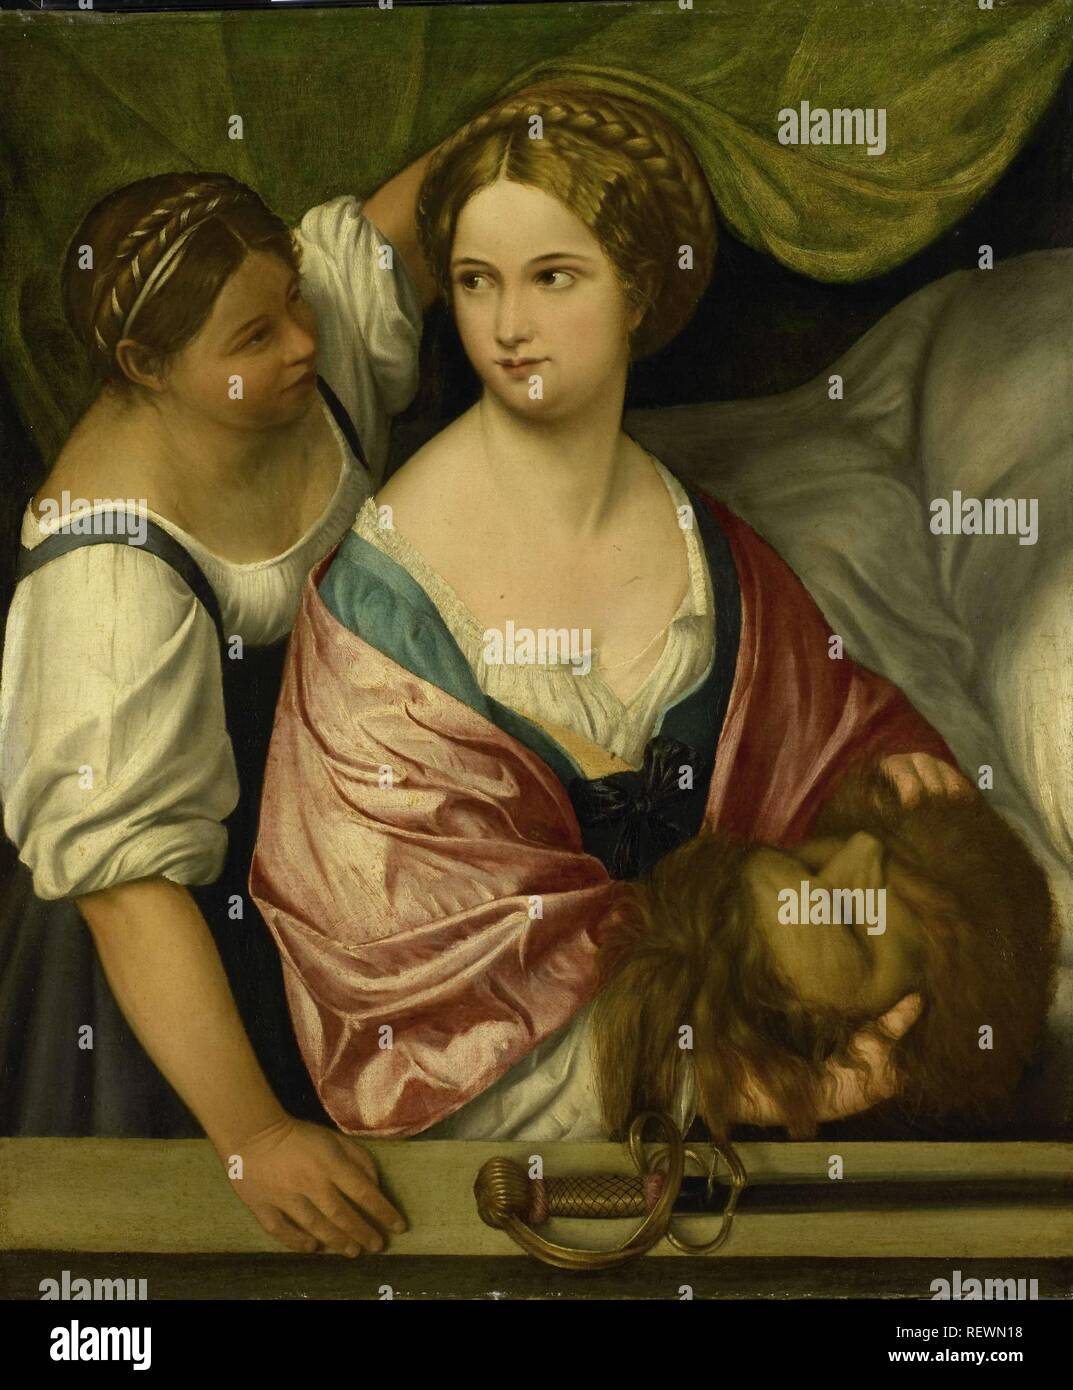 Judith with the Head of Holofernes. Dating: 1500 - 1539. Measurements: h 103.5 cm × w 86.5 cm; d 8 cm. Museum: Rijksmuseum, Amsterdam. Author: Pordenone (circle of). - Stock Image